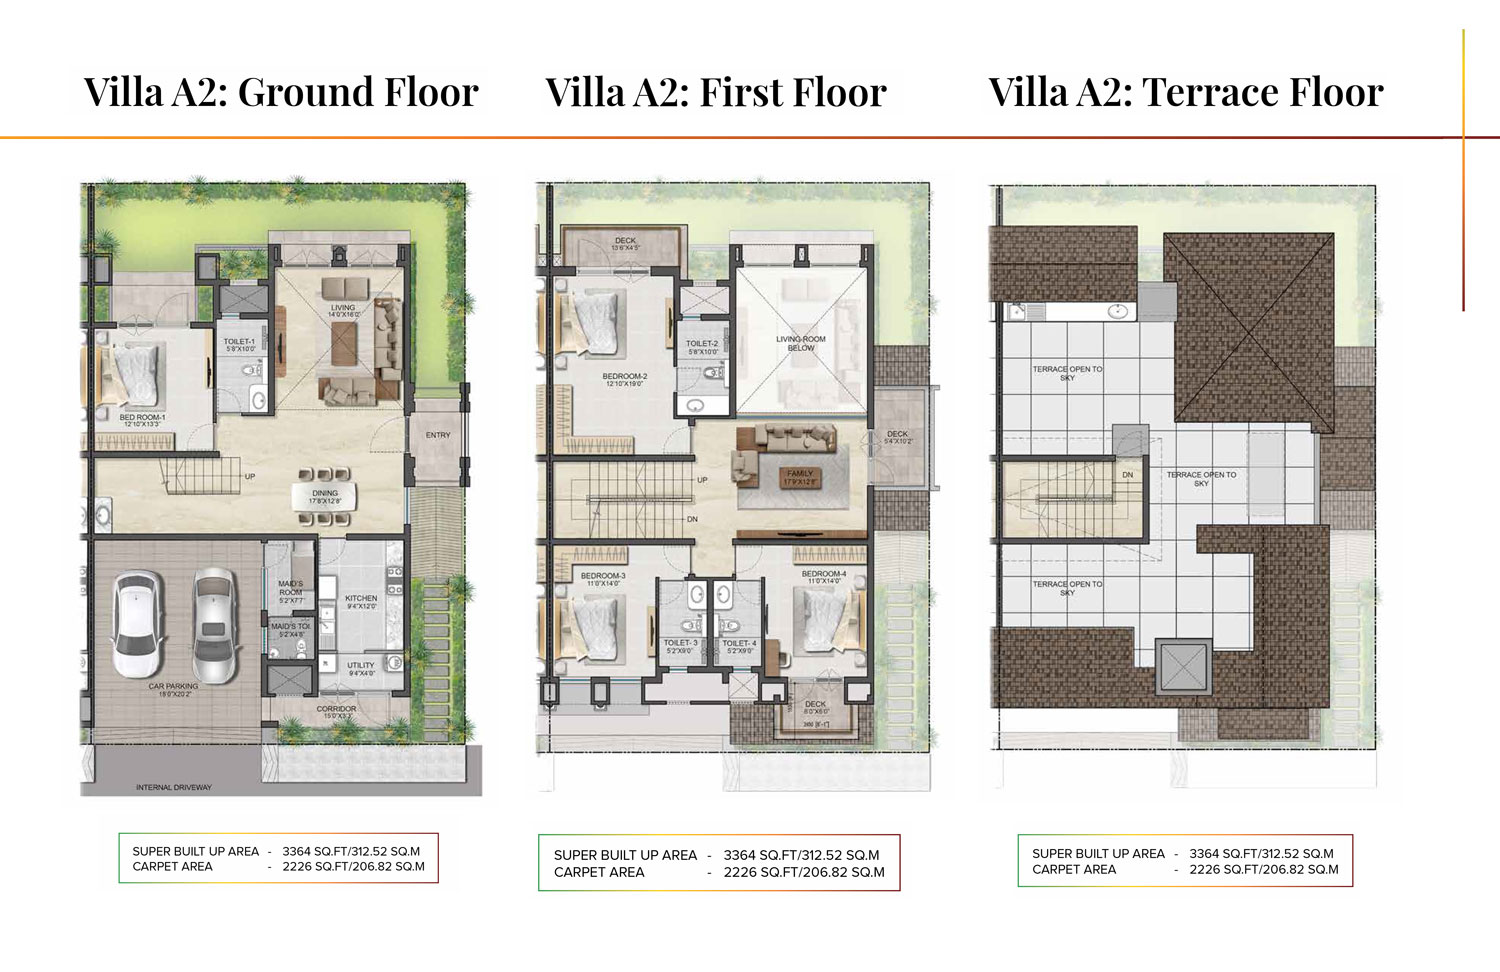 Type A2 - 3364 Sq Ft